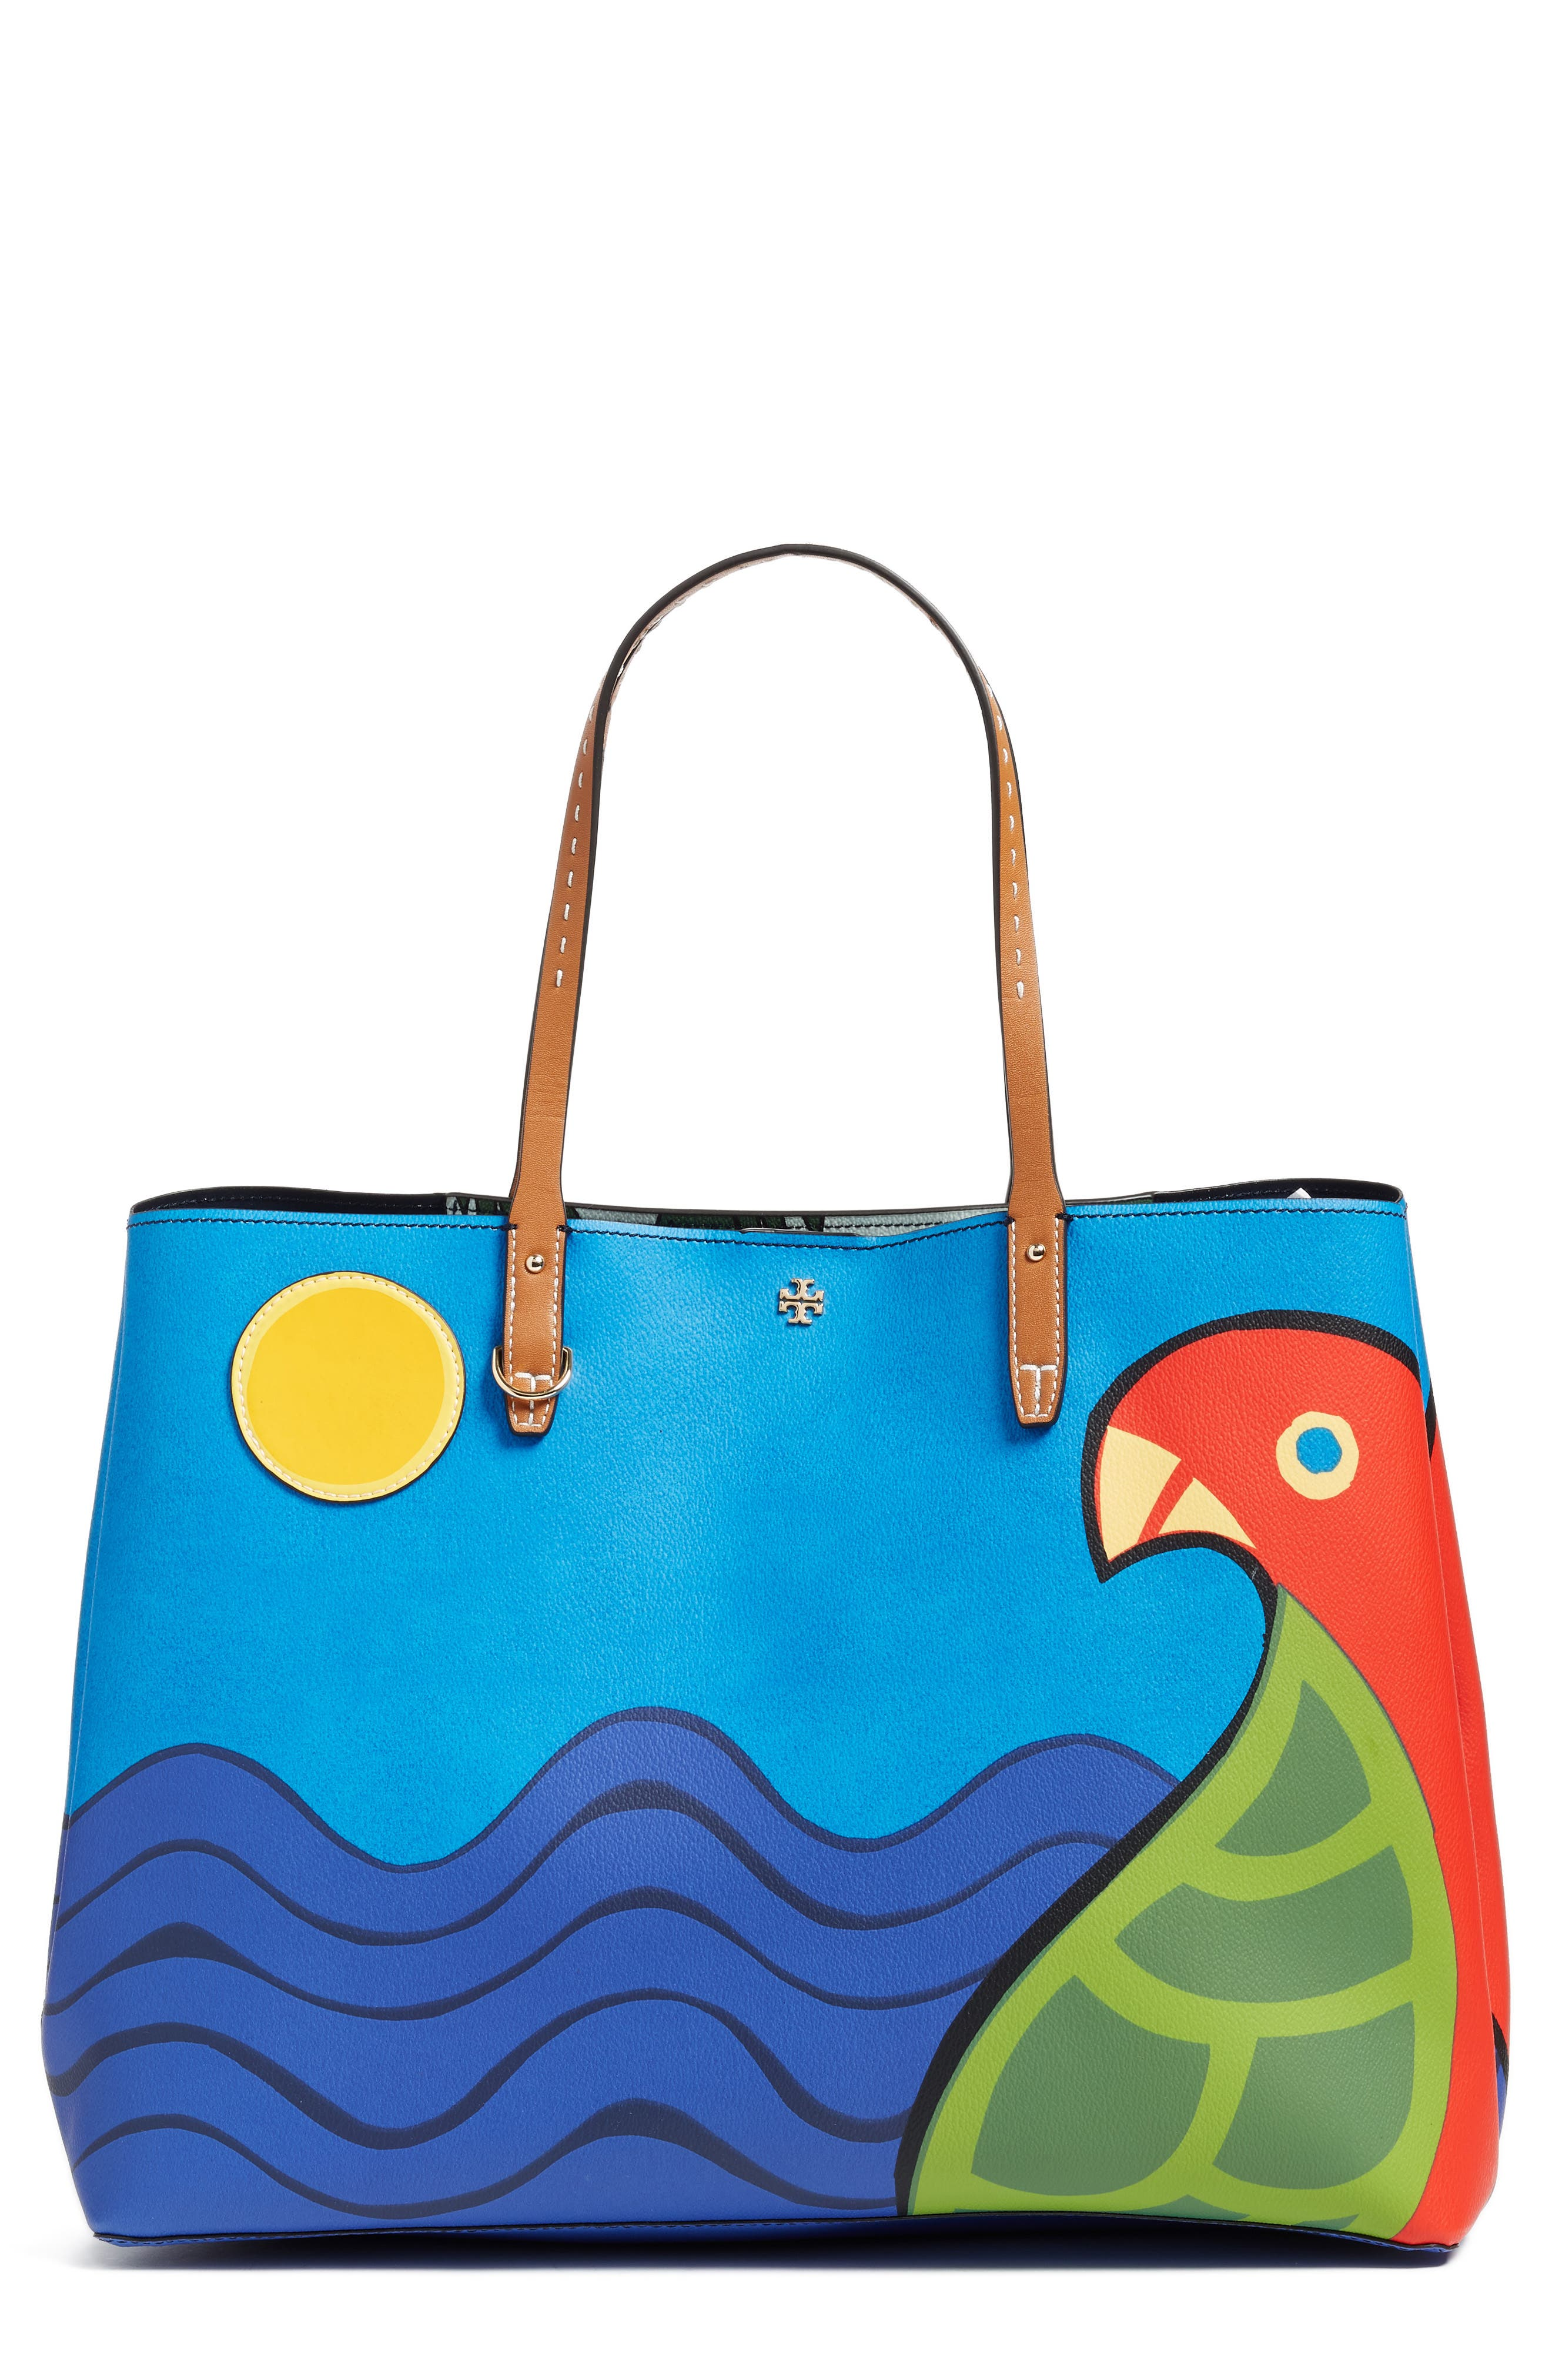 Alternate Image 1 Selected - Tory Burch Kerrington Parrot Coated Canvas Tote